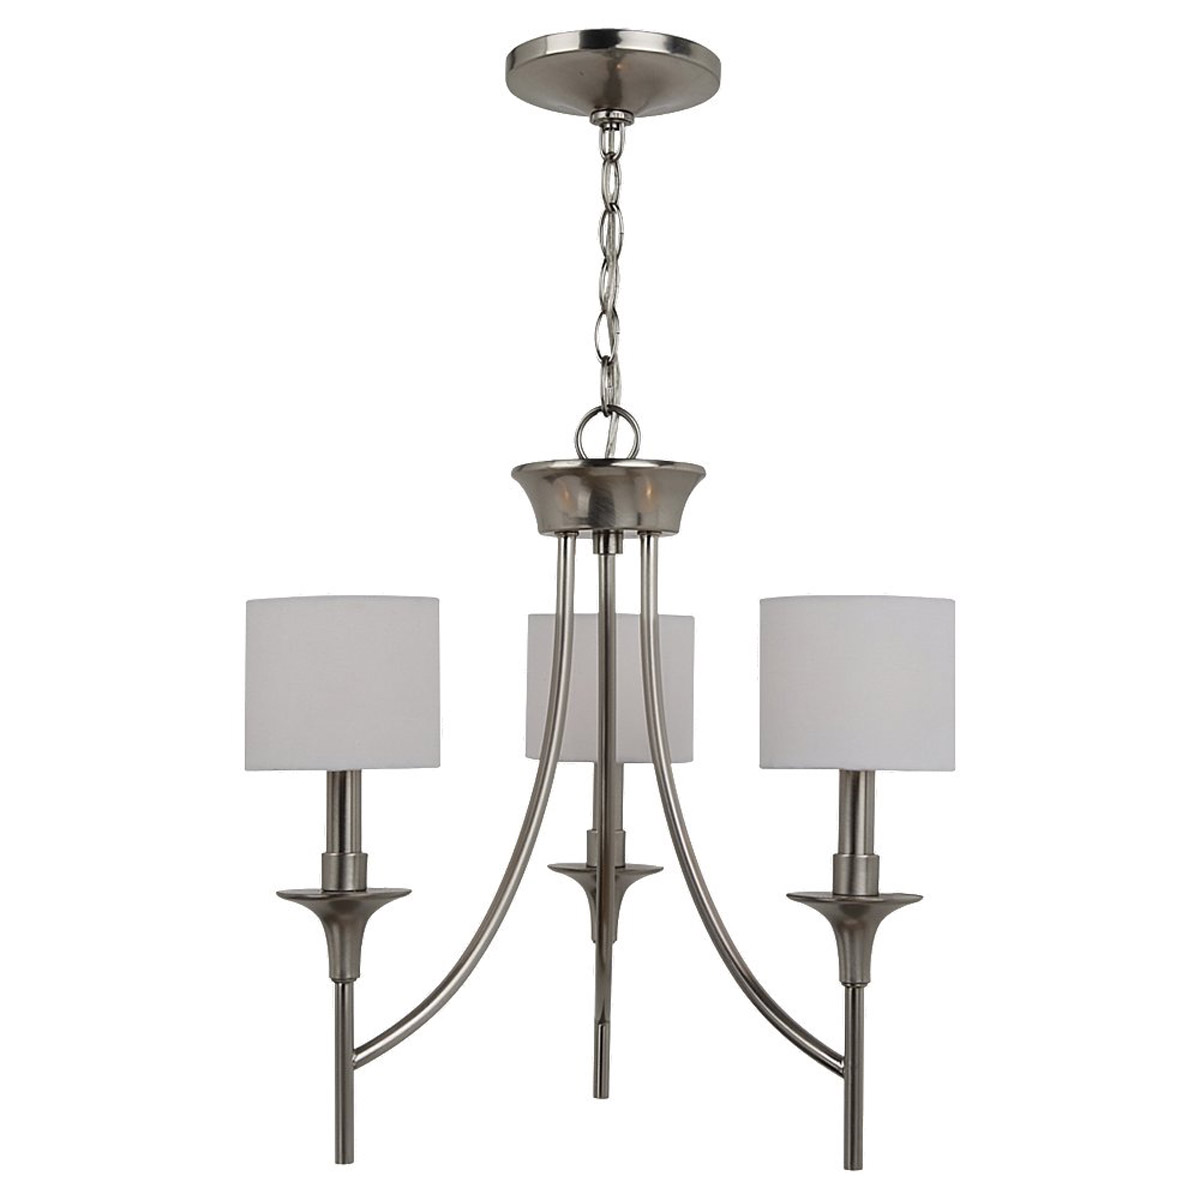 Sea Gull 31932-962 Stirling 3 Light 19 inch Brushed Nickel Chandelier Ceiling Light in White Linen Fabric photo